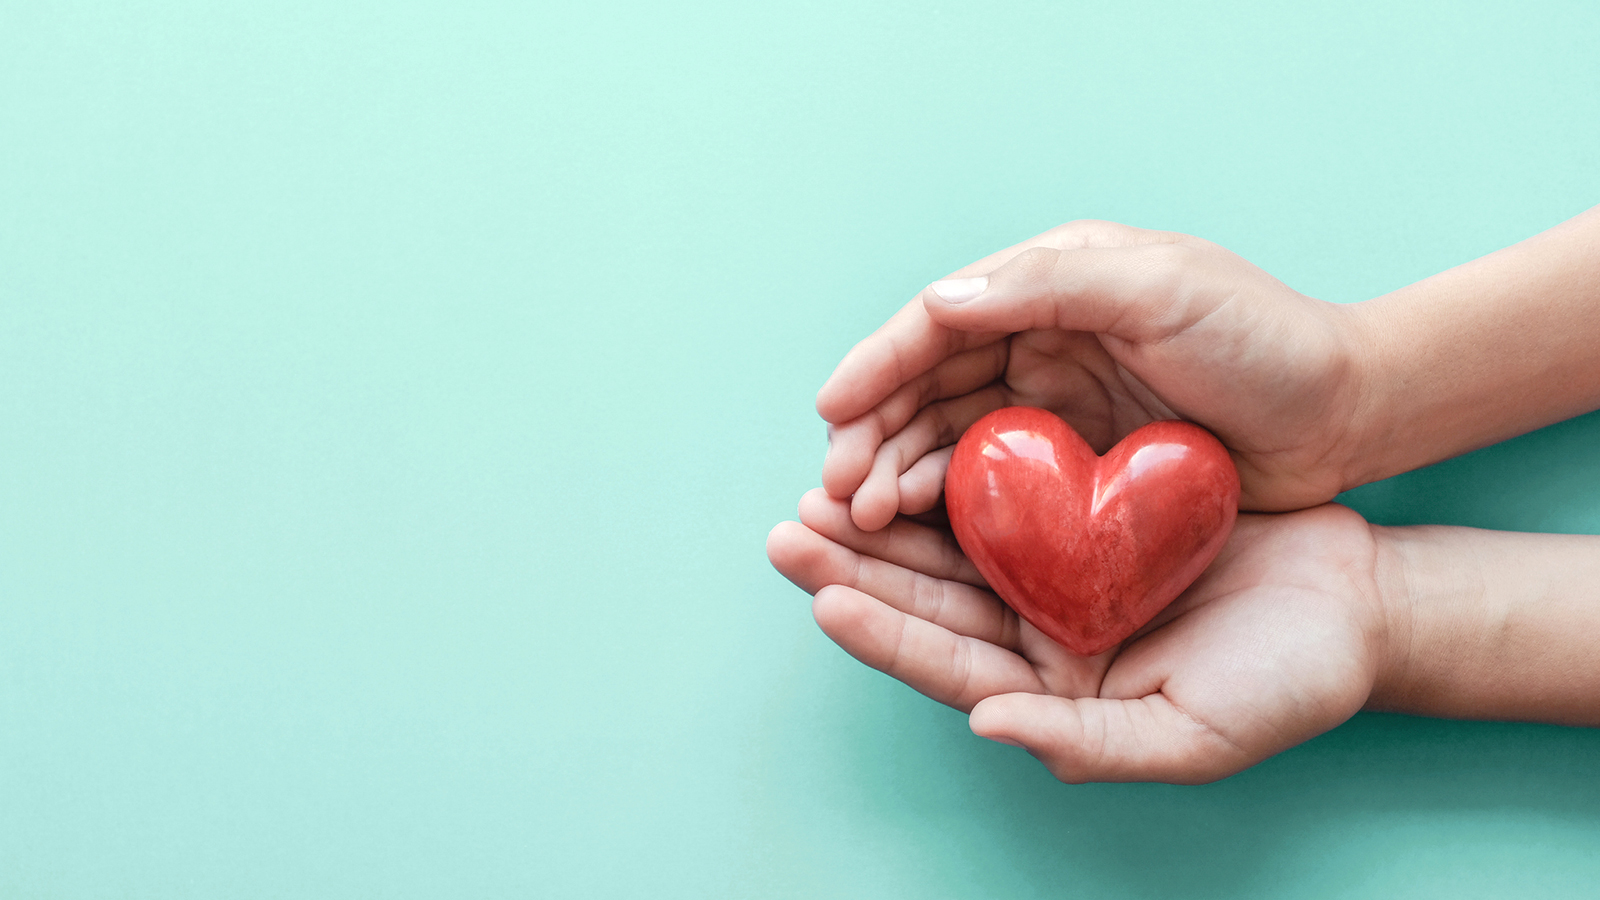 hands holding red heart on blue background,